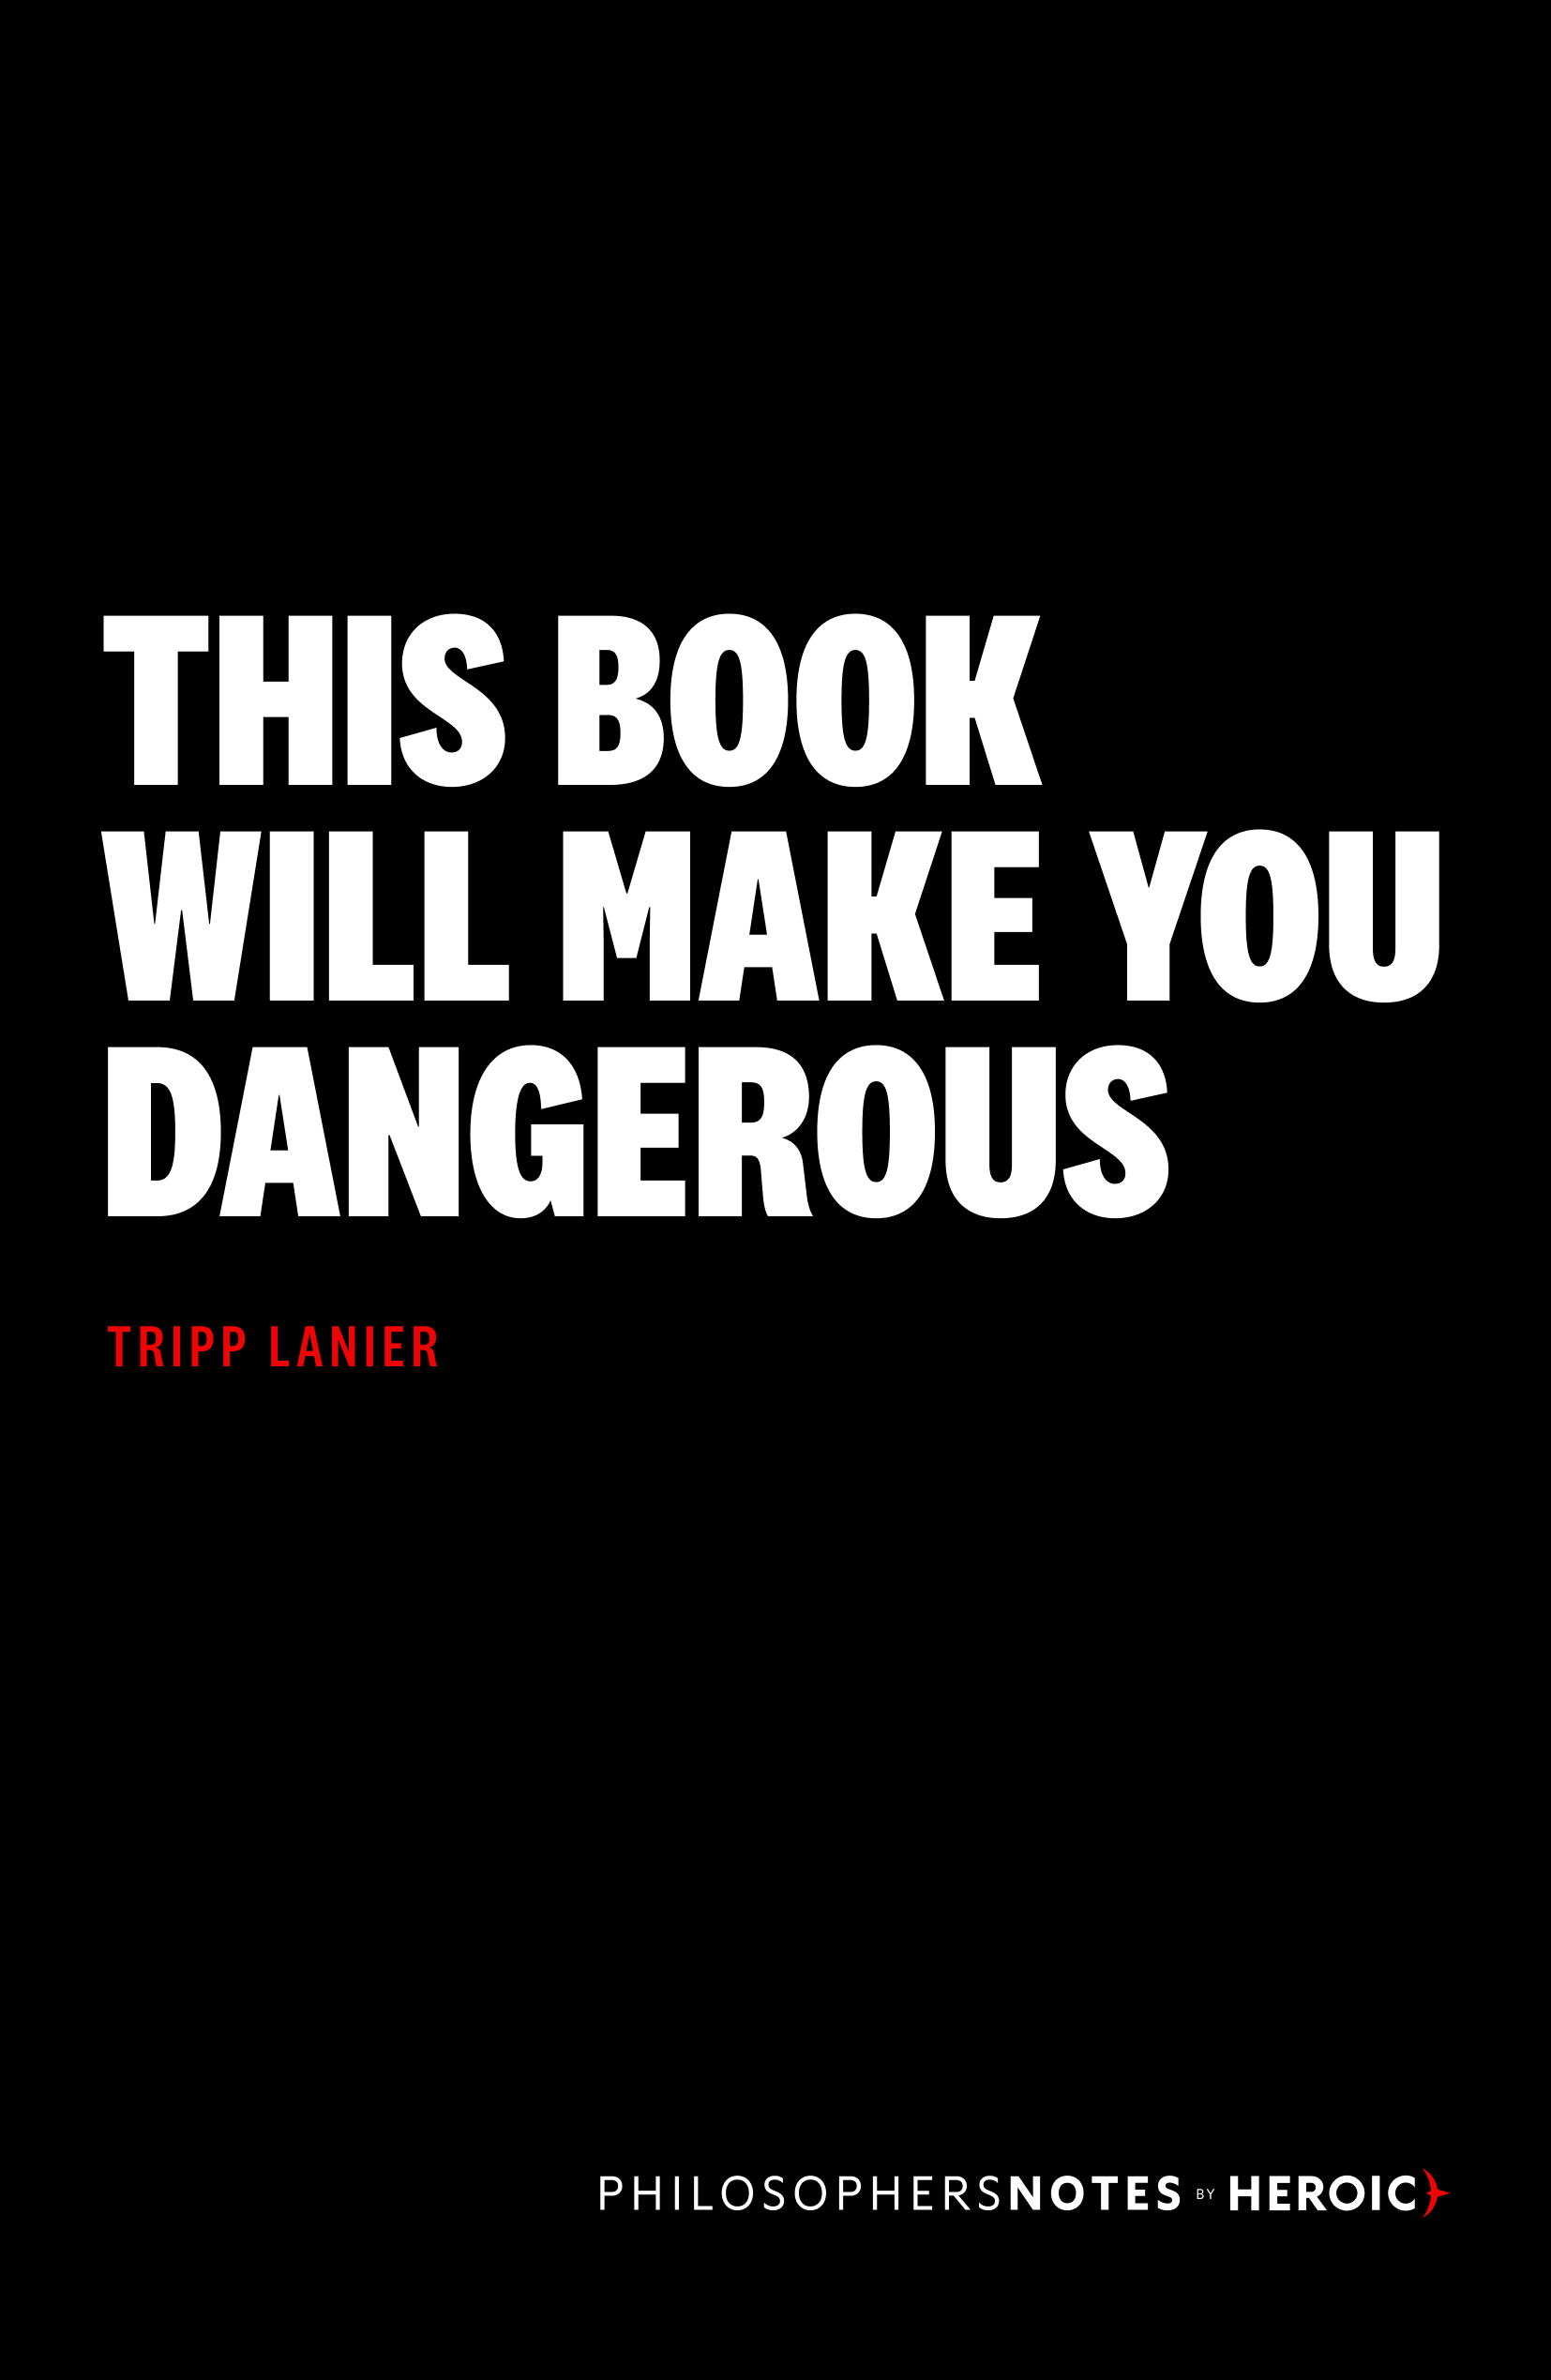 This Book Will Make You Dangerous